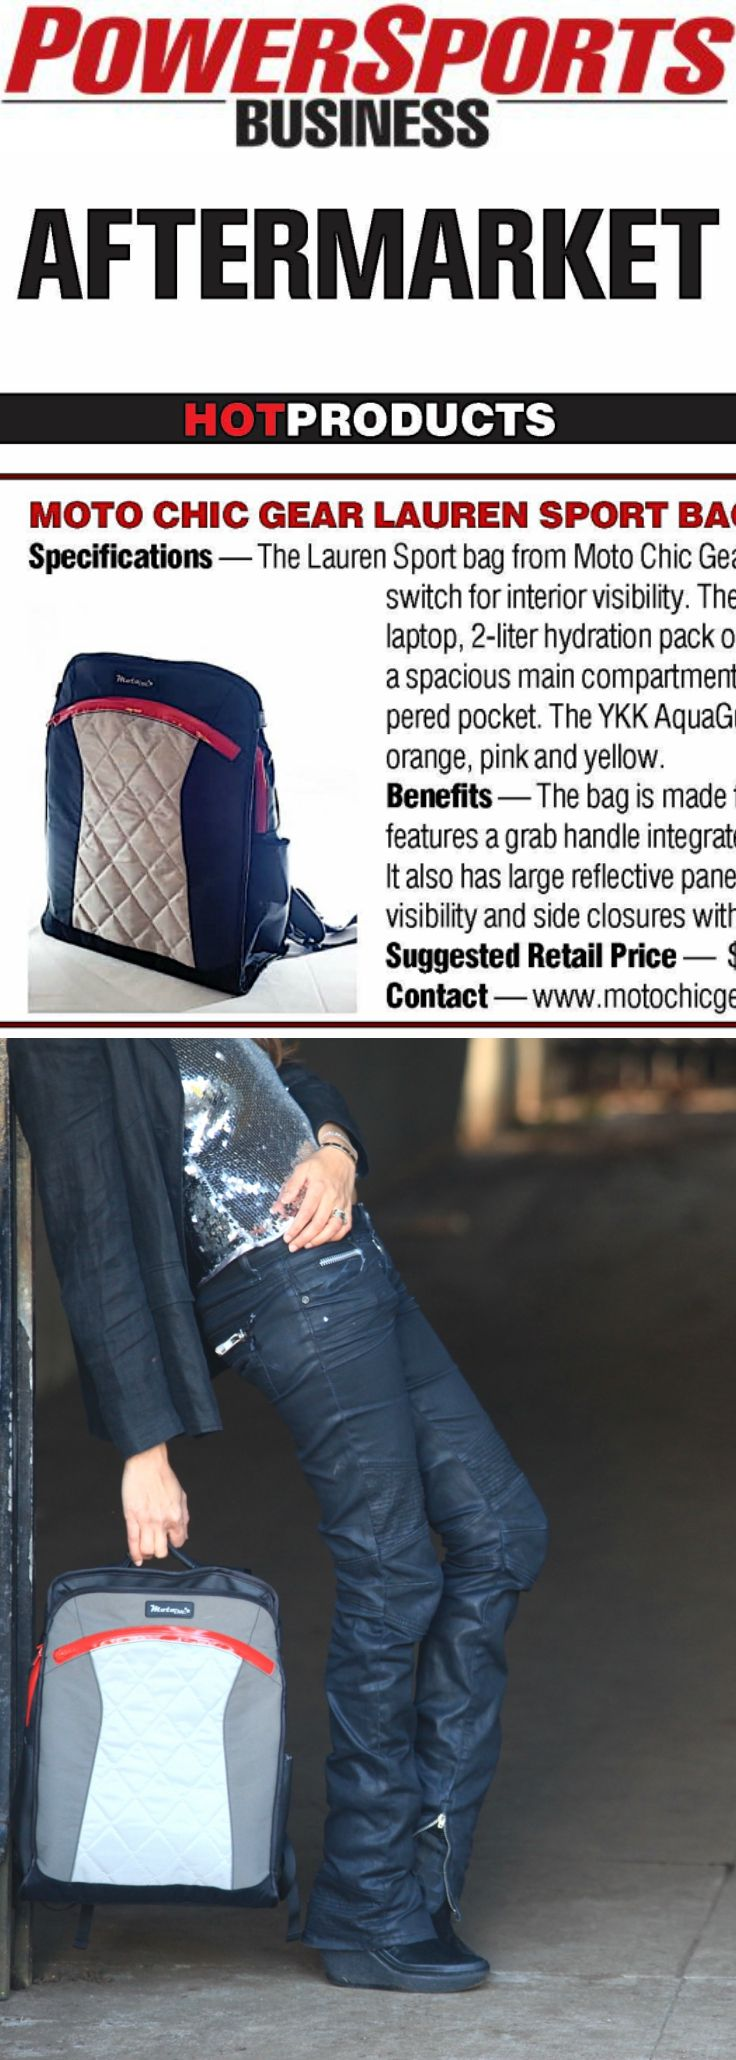 """POWERSPORTS BUSINESS MAGAZINE AFTERMARKET """"TOP PRODUCTS"""": The MotoChic Gear Lauren Sport Backpack Tote. Fashionable and functional features include 100% cruelty-free materials, interior LED light, reflective exterior safety panels, locking side closures for wind resistance. backpack / tote bag / vegan backpack / vegan tote bag / ladies backpack / womens backpack / motorcycle bag / motorcycle backpack"""